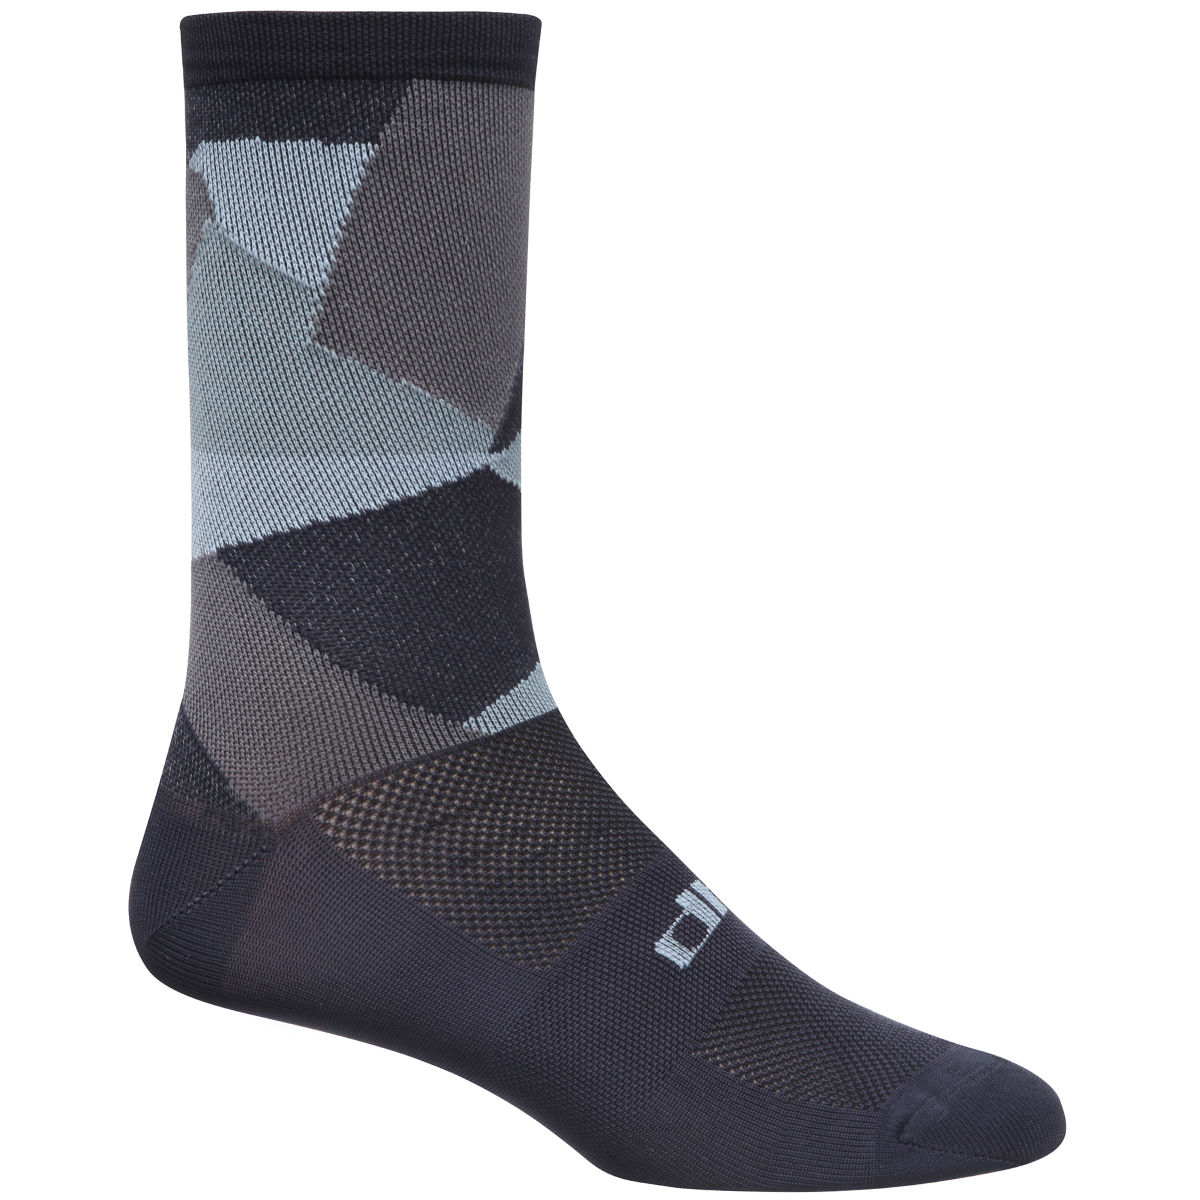 Chaussettes dhb Blok Geo Camo - UK 2.5-6 (EU 35-39) Grey/Blue/Black